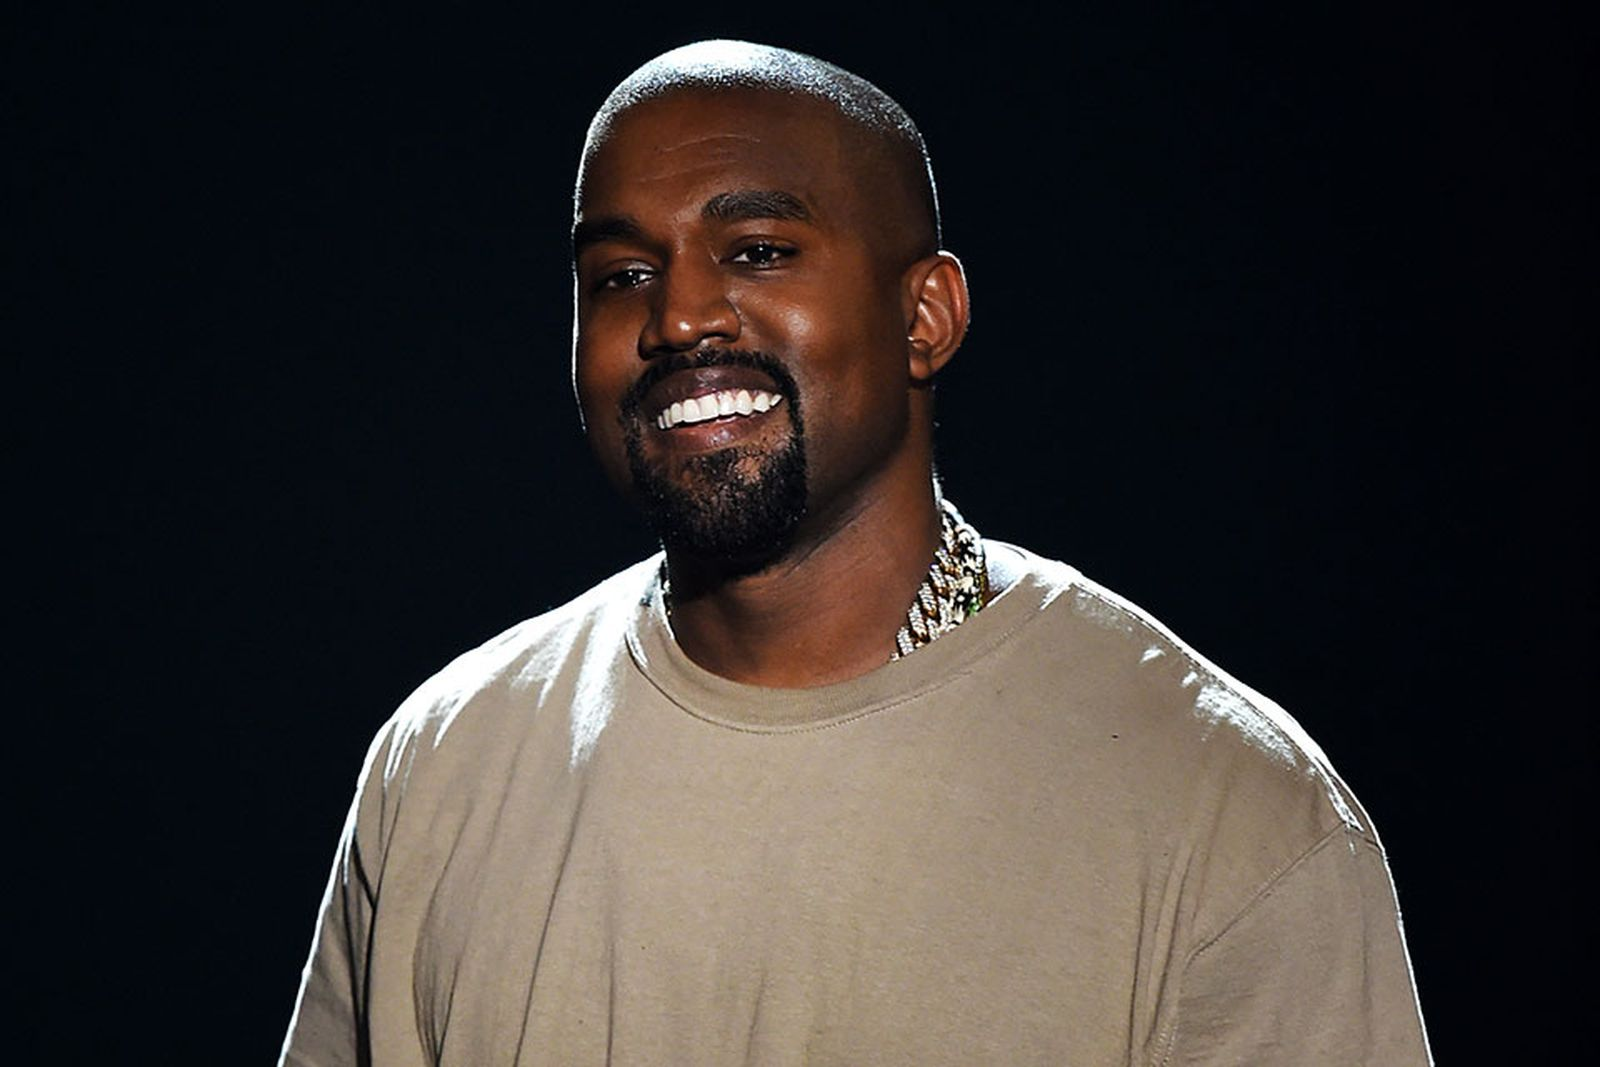 kanye west project wyoming recap #PROJECTWYOMING Supermoon Yellow campaign